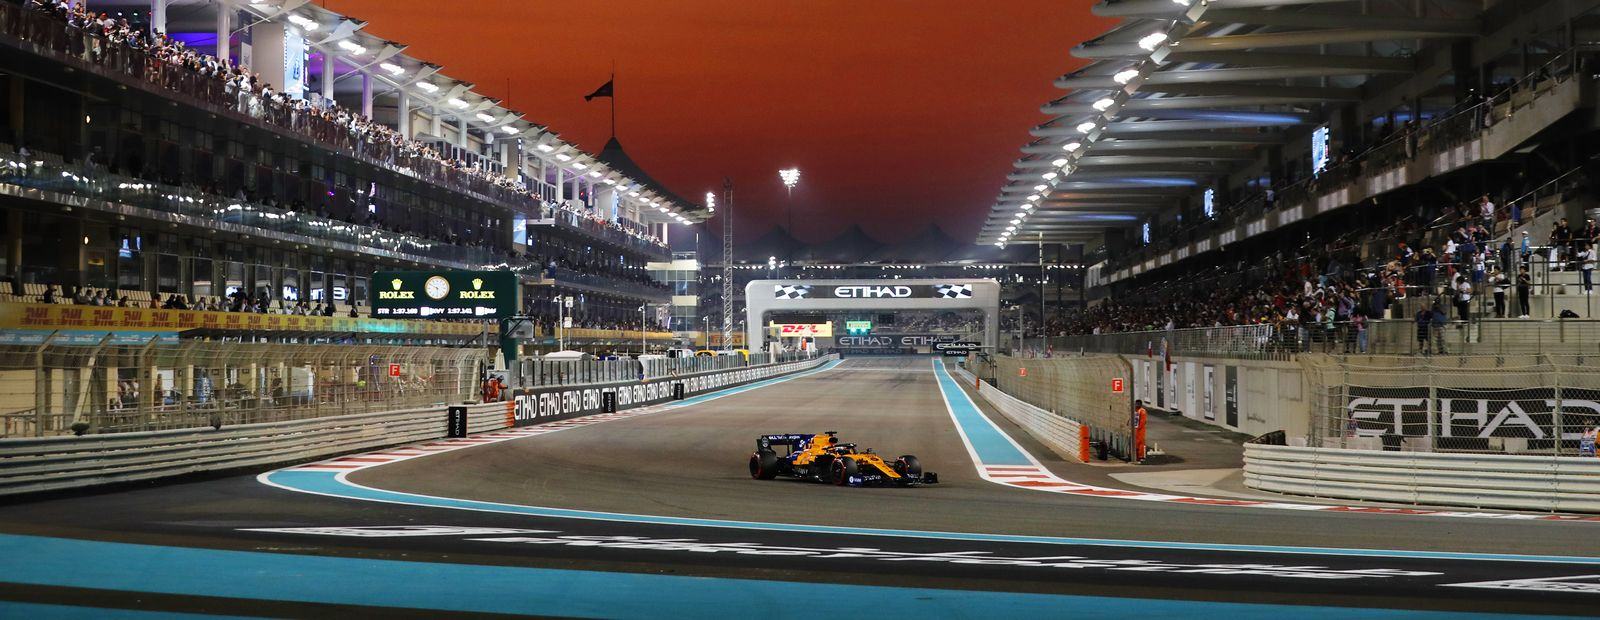 2019 Abu Dhabi Grand Prix - Qualifying